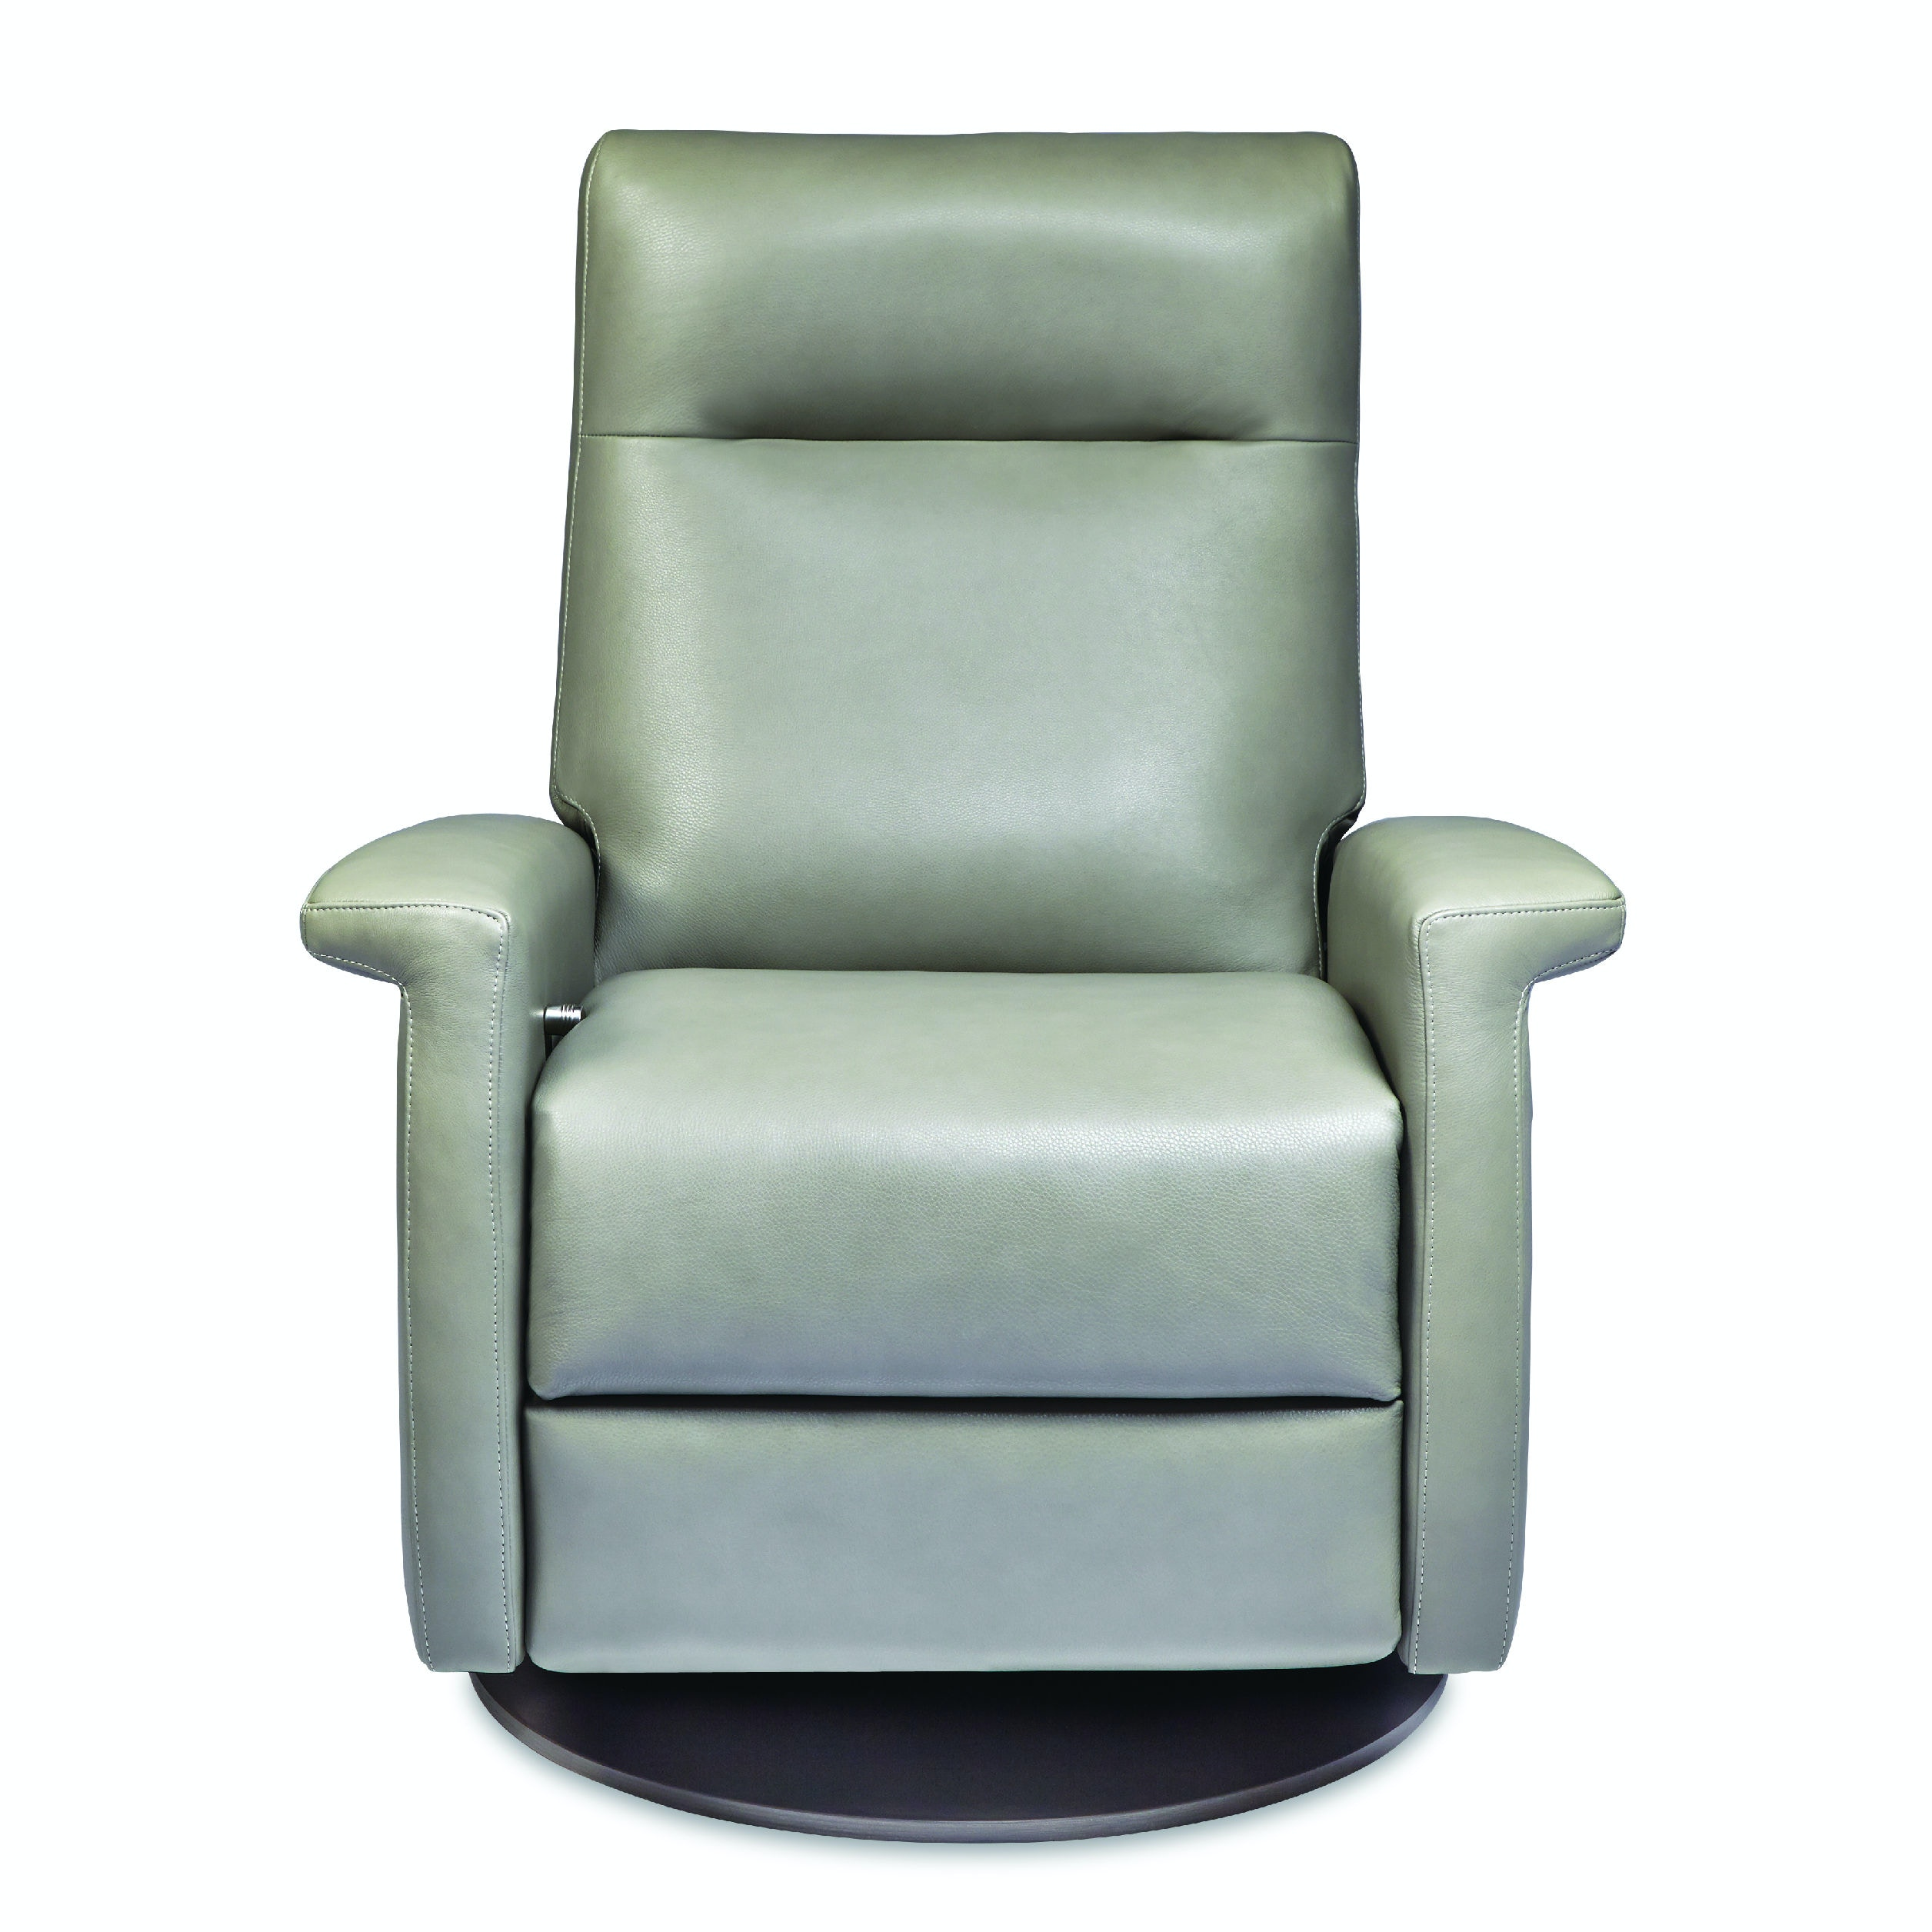 american leather chairs and recliners antique sewing chair with drawer living room fallon 7 recliner fln rv7 st at treeforms furniture gallery